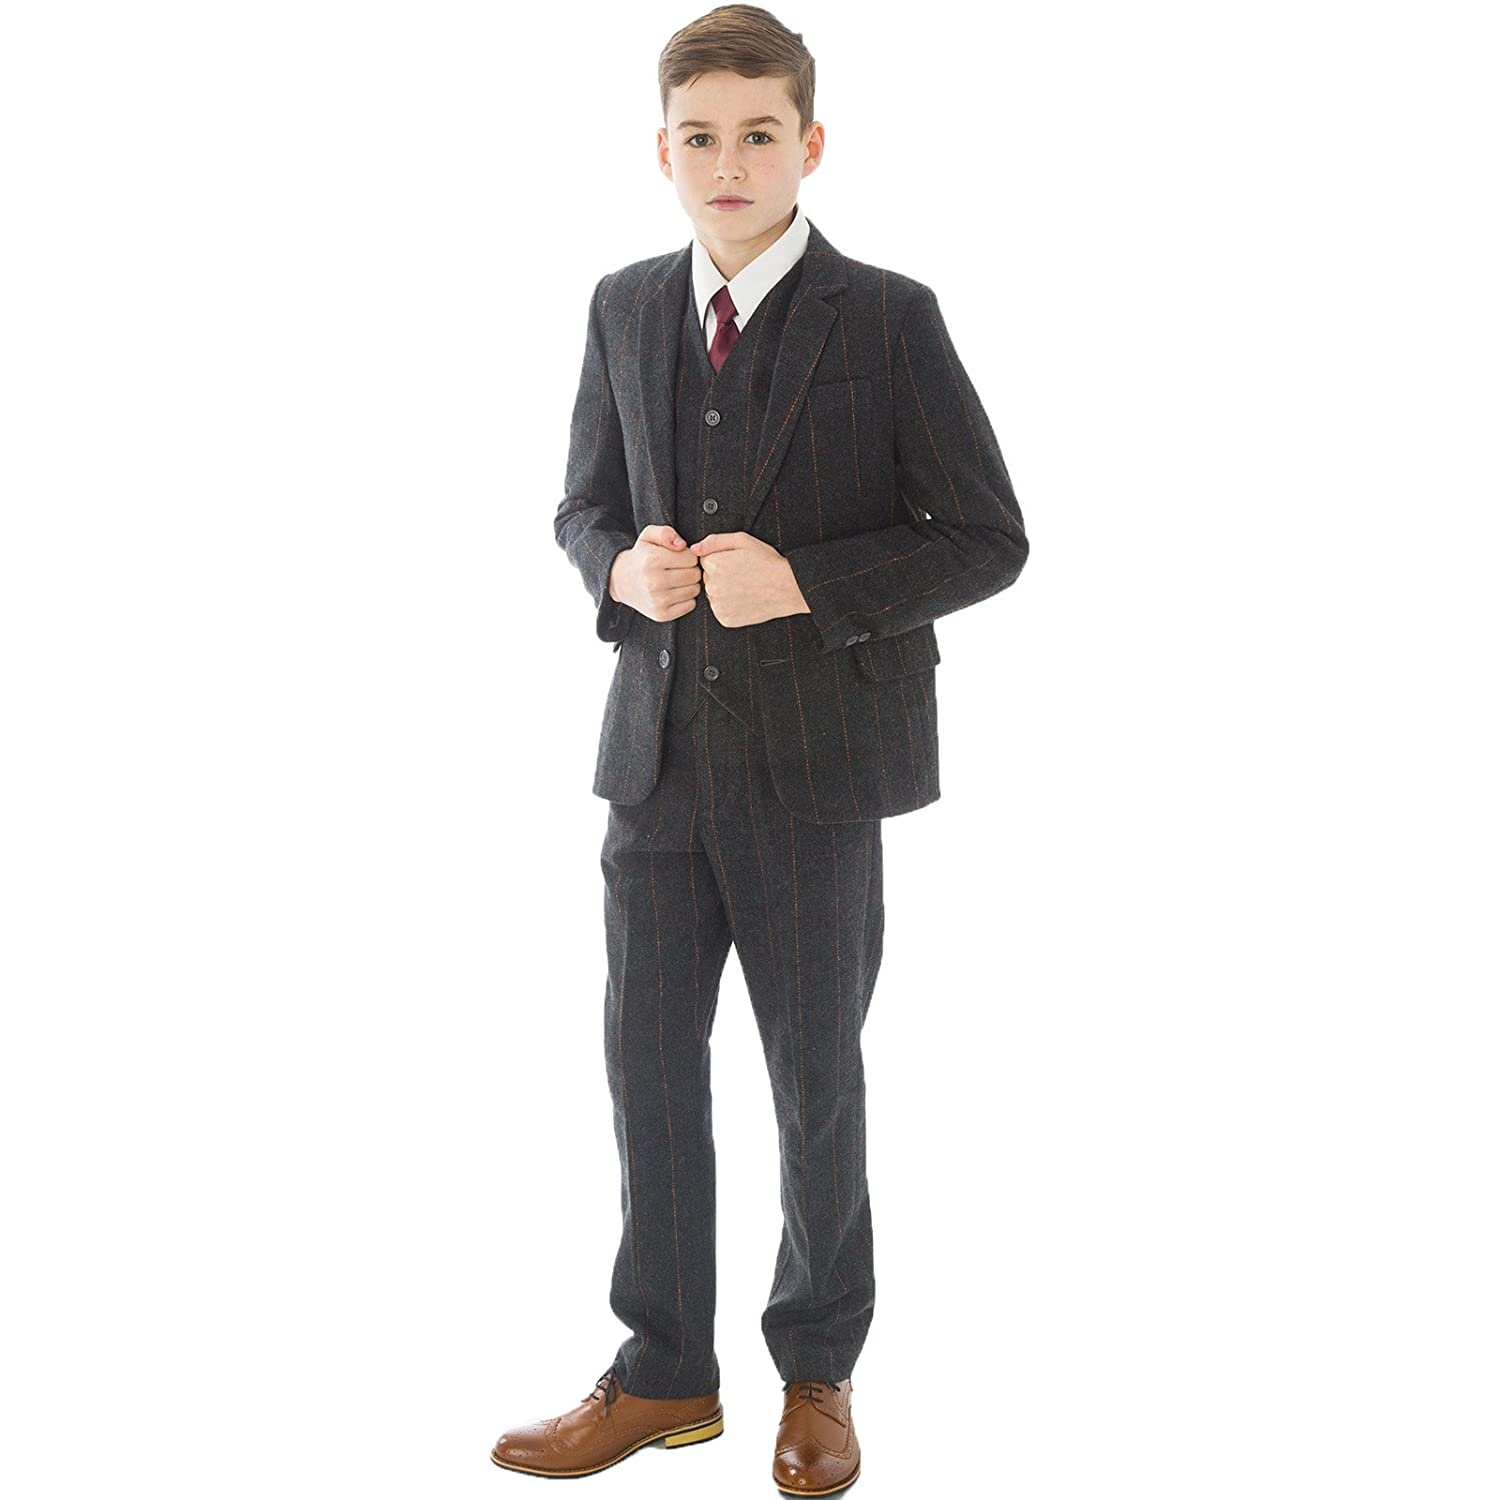 Vintage Style Children's Clothing: Girls, Boys, Baby, Toddler 5pc Grey Check Boys Tweed Suit Boys Wedding blazer Page Boy Party Outfit Boys grey Suit £54.99 AT vintagedancer.com